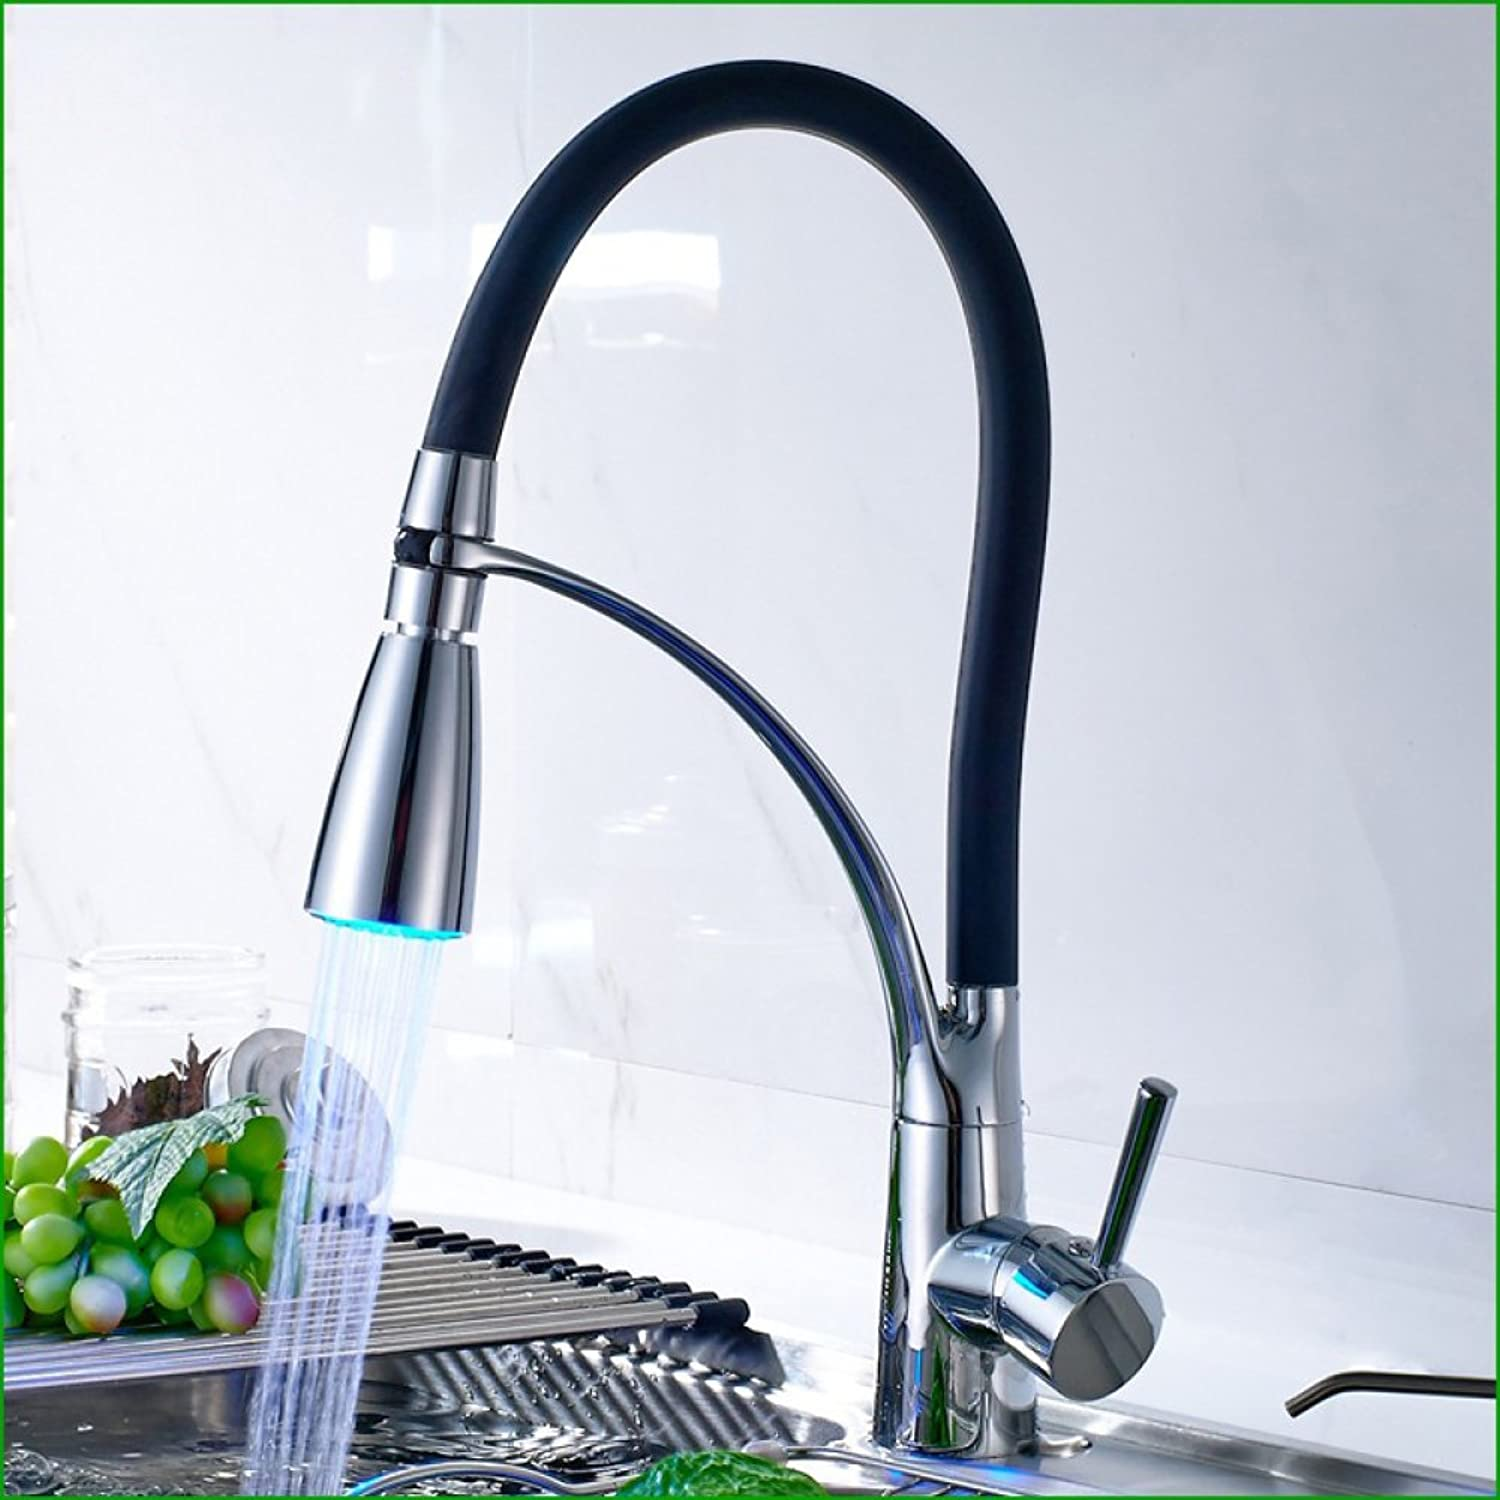 FW Pull-out kitchen faucet basin sink mixer sink telescopic spring-operated faucet hot and cold all copper outlet LED